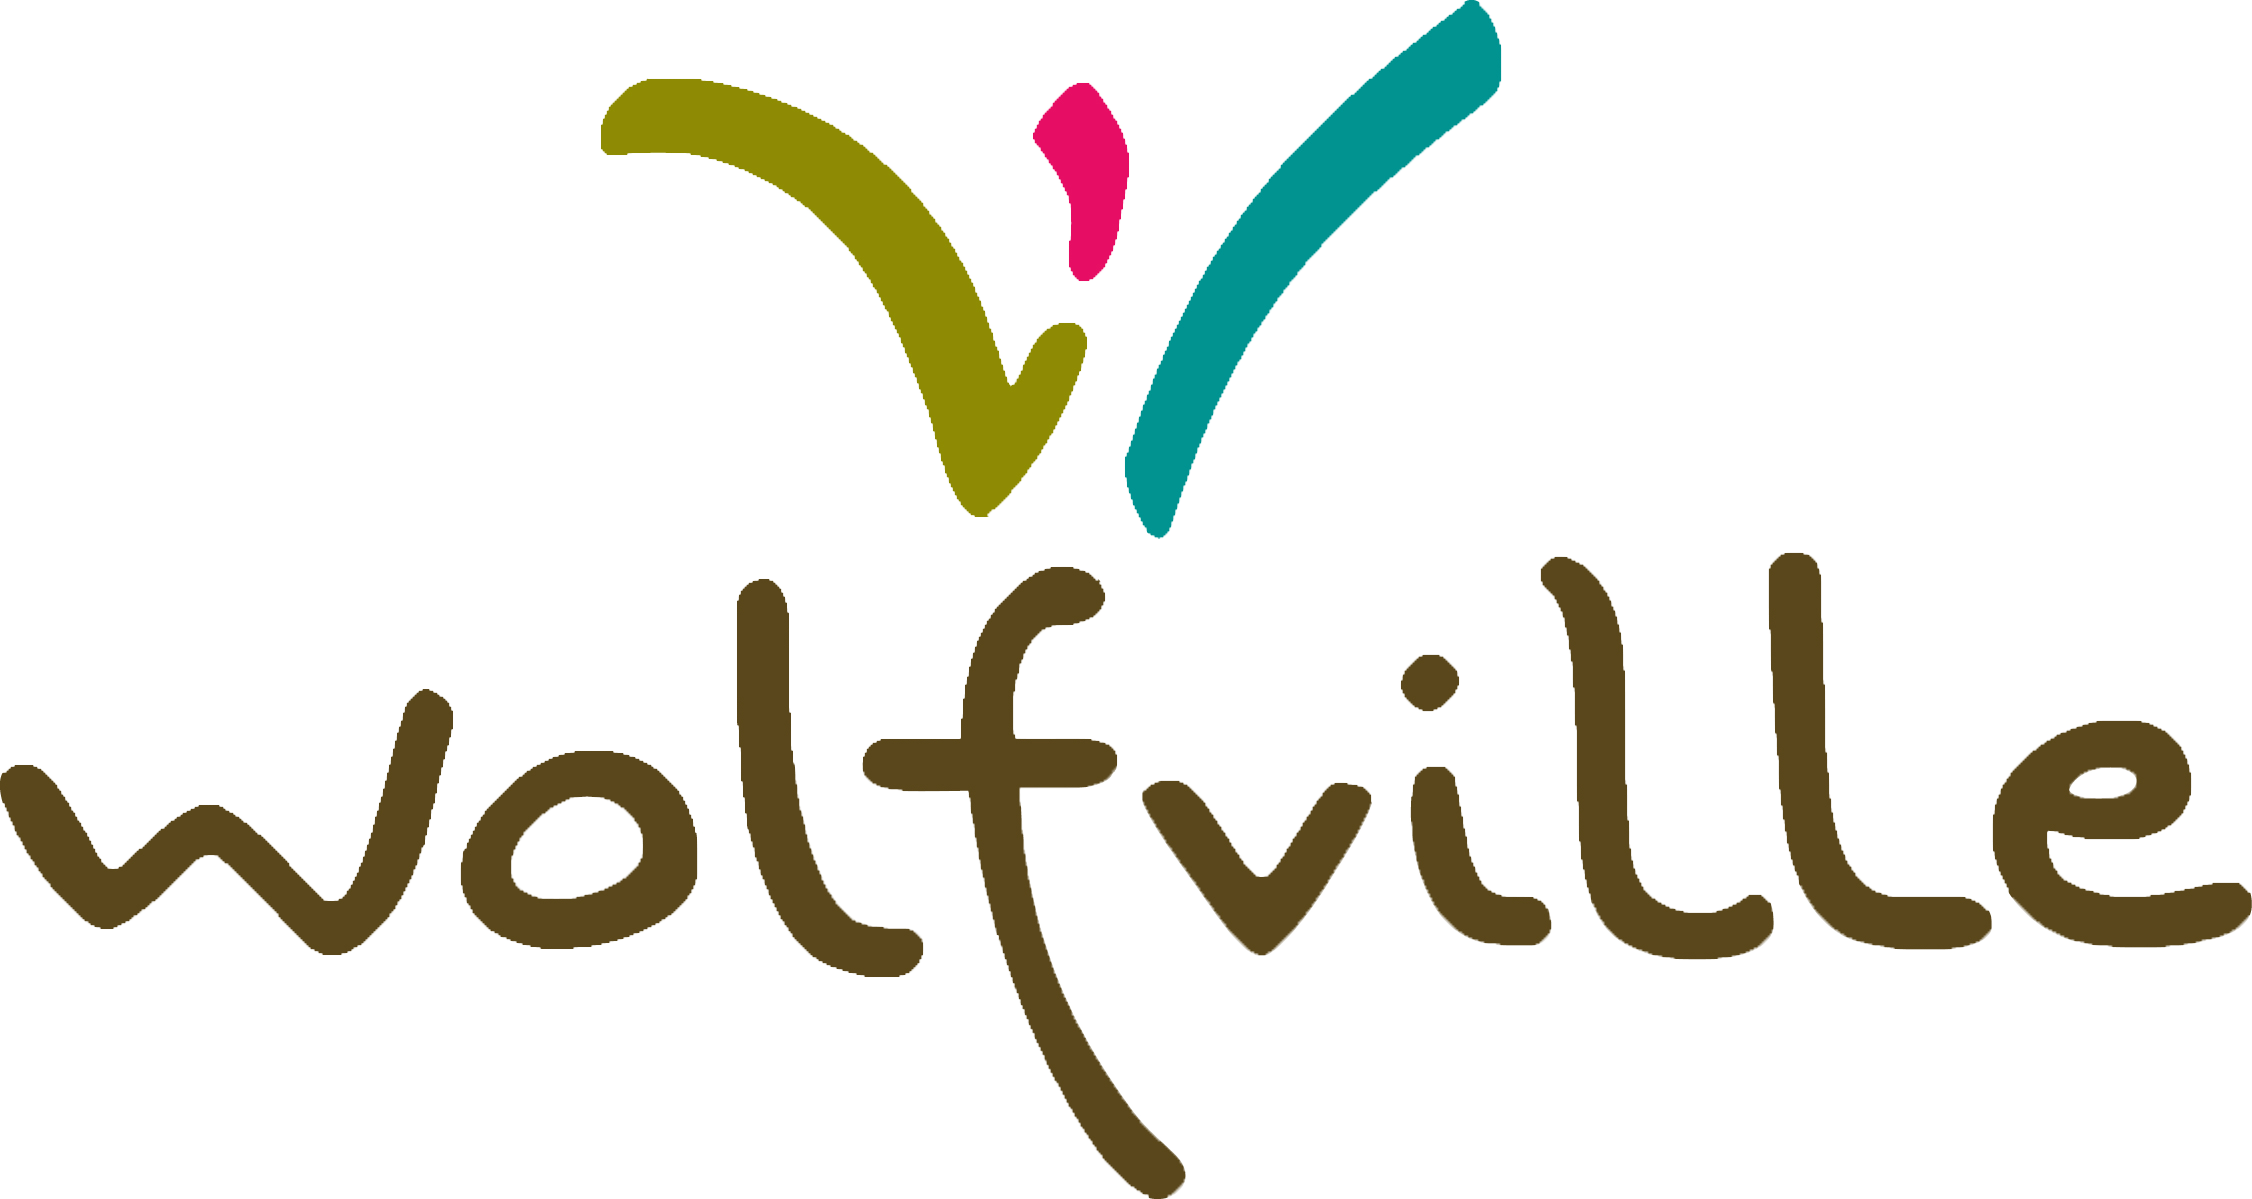 wolfville logo_transparent background.png